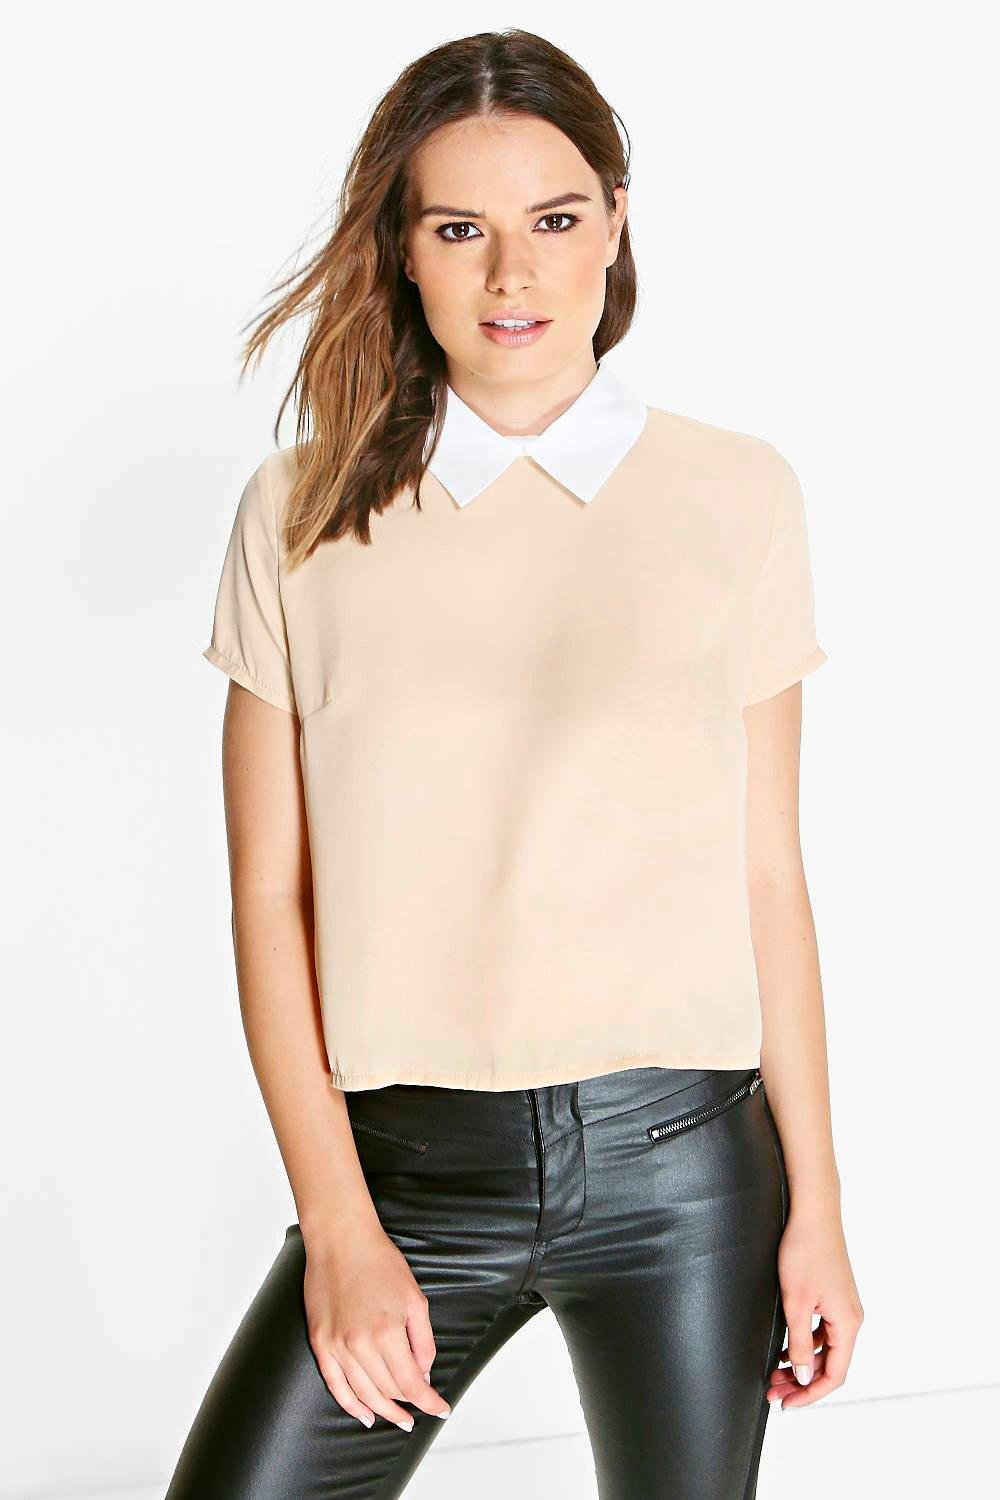 Find women's collar tops at ShopStyle. Shop the latest collection of women's collar tops from the most popular stores - all in one place.